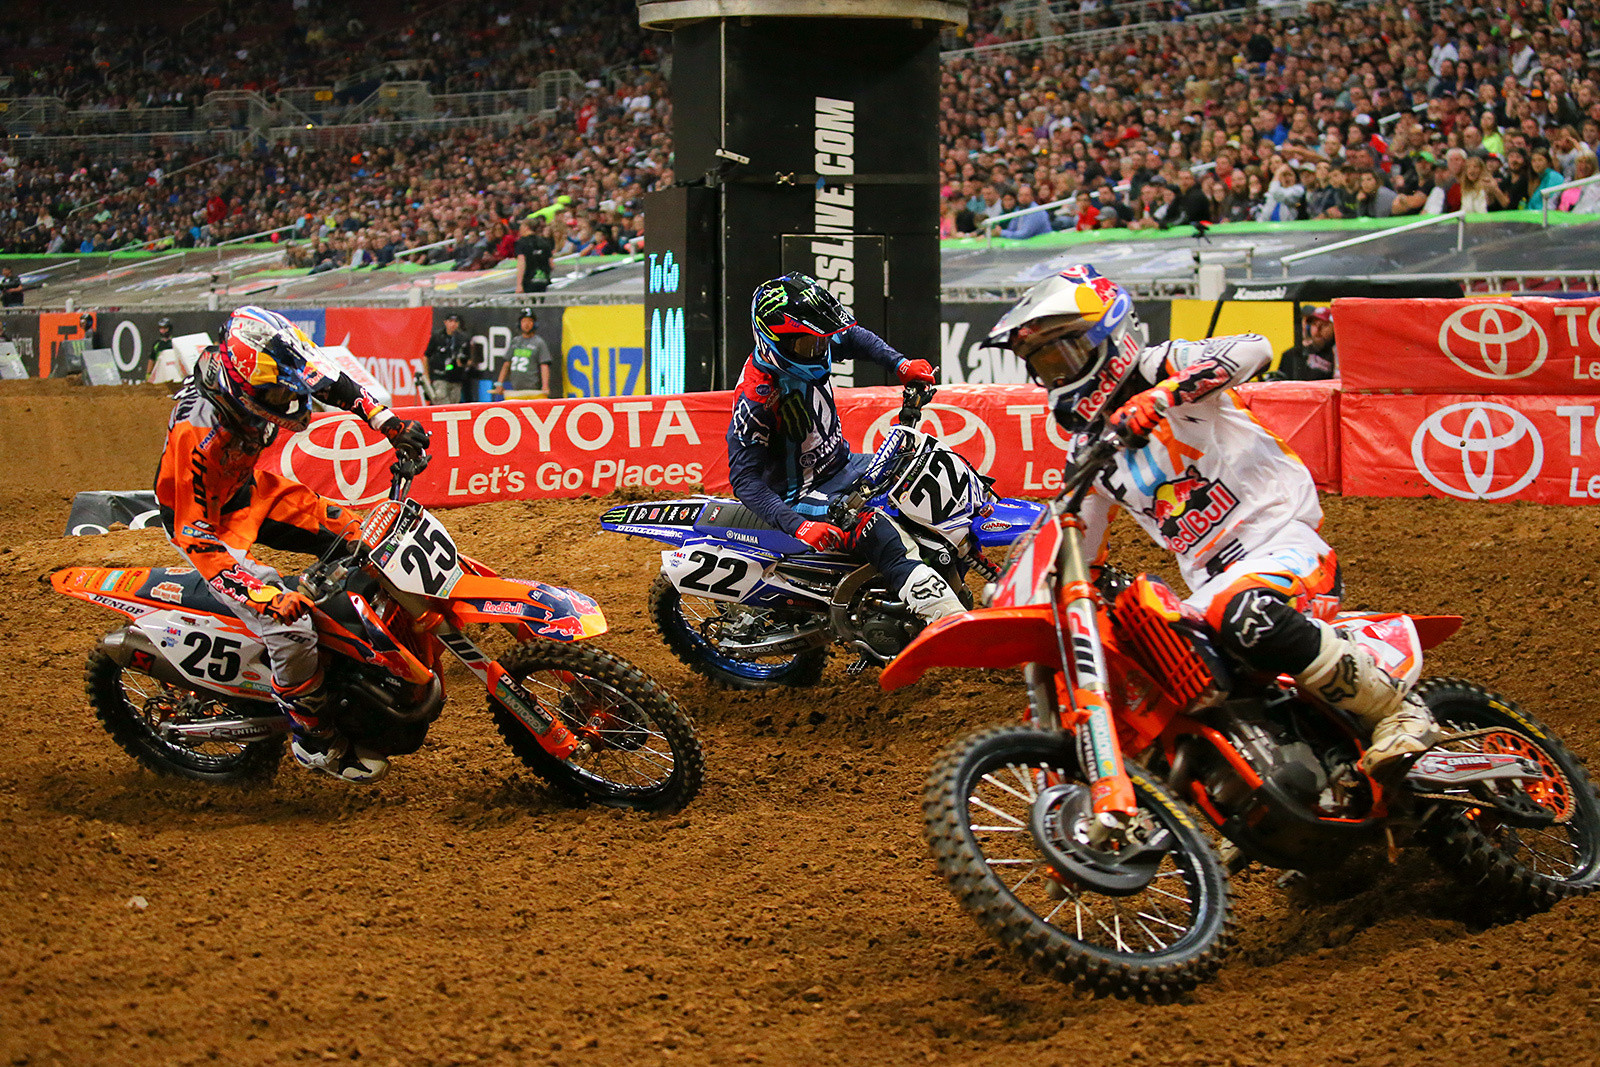 Ryan Dungey, Marvin Musquin and Chad Reed - Photo Blast: St. Louis - Motocross Pictures - Vital MX